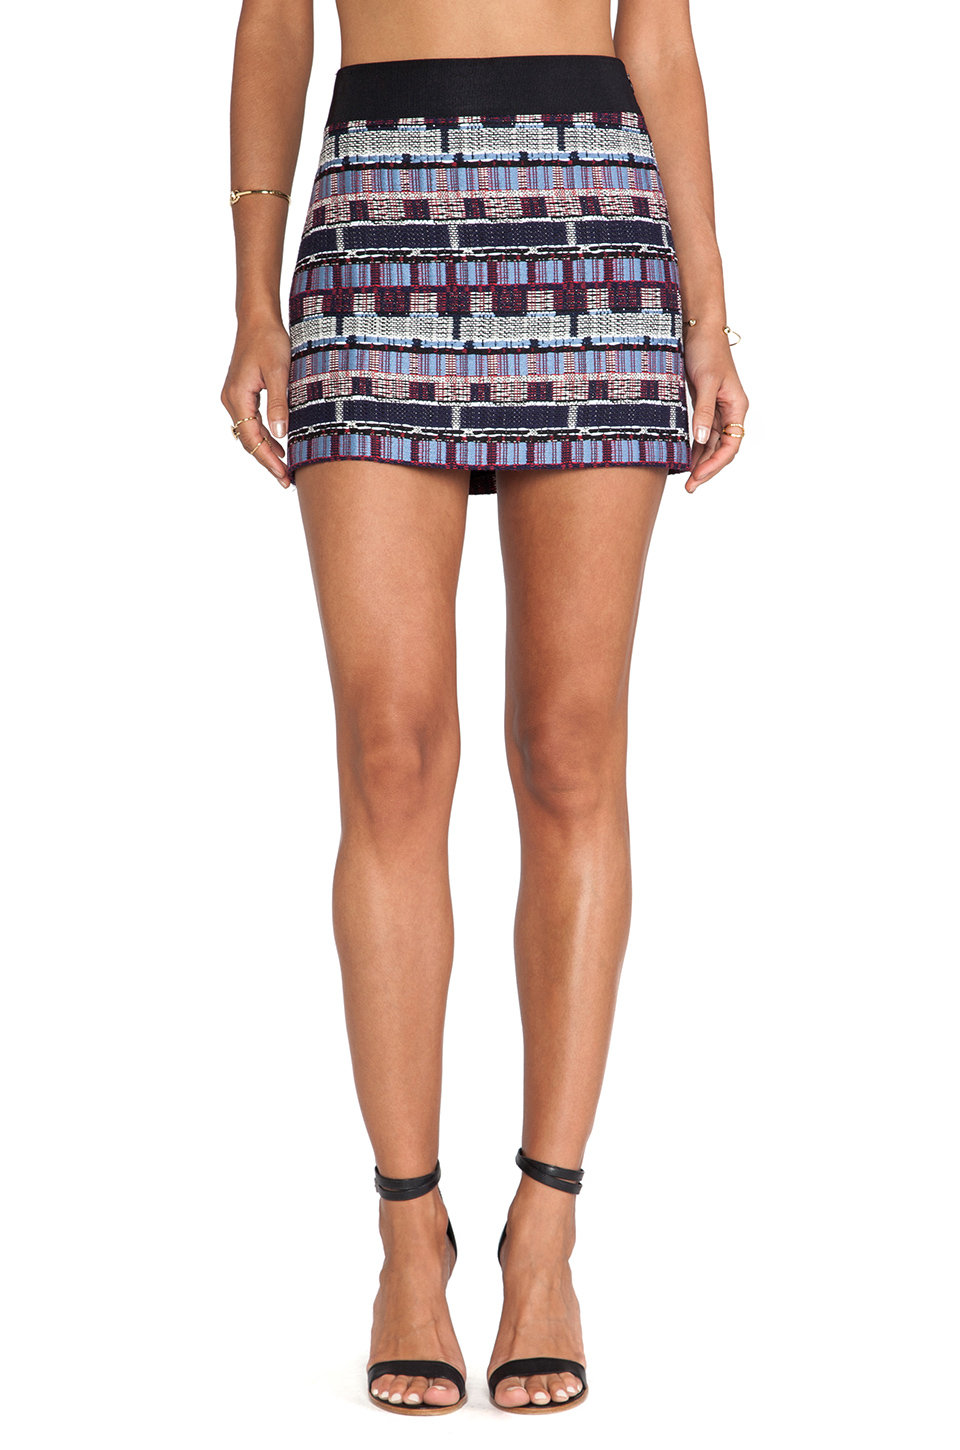 MINI MOMENT: Milly Couture Tweed Mini Skirt available at Revolve Clothing for $220.00